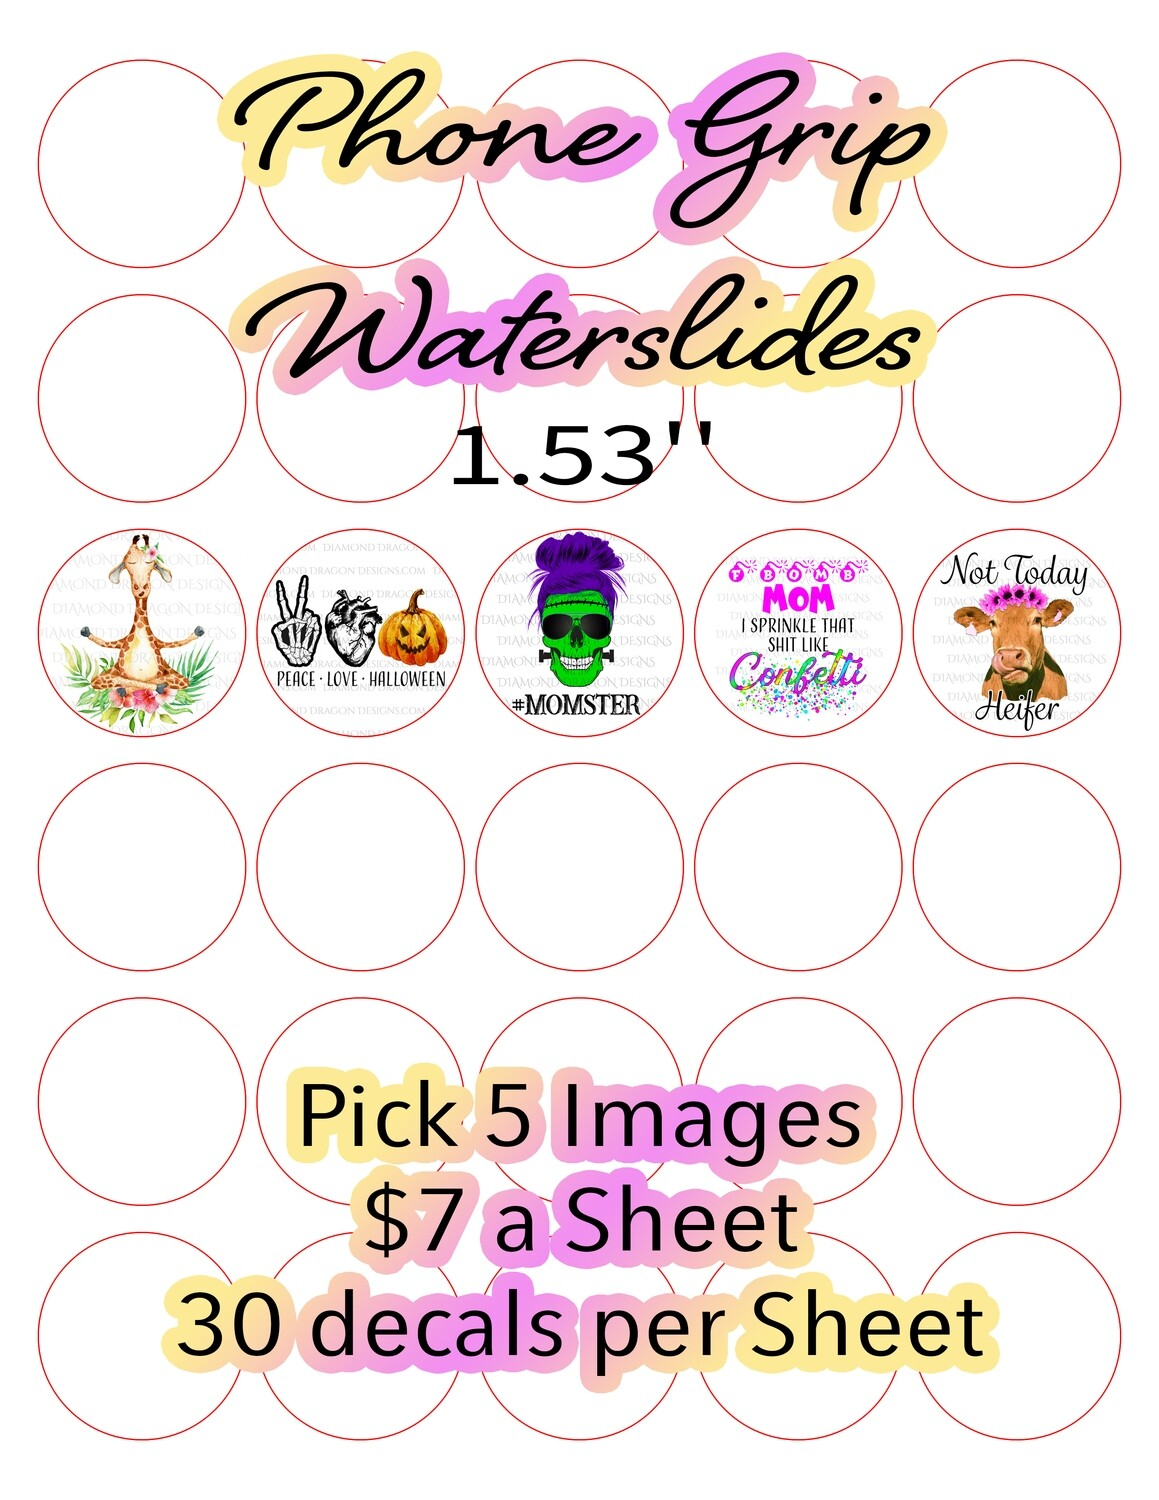 Full Page - Phone Grip Waterslides, Pick 5 Images, Custom Full Page Design - Waterslide